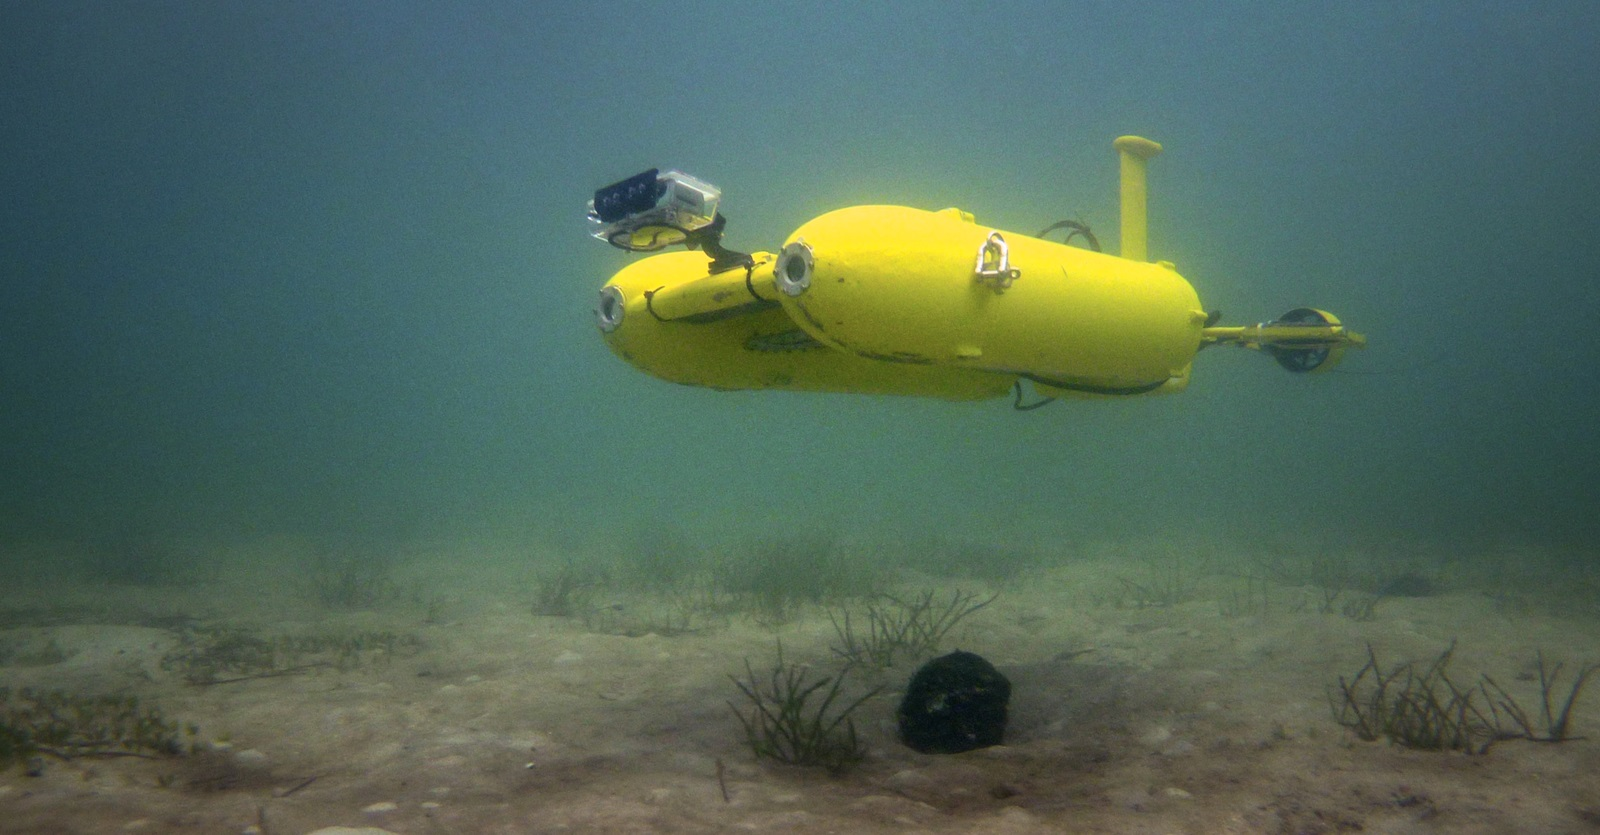 Yellow twin hulled autonomous submarine underwater in the ocean